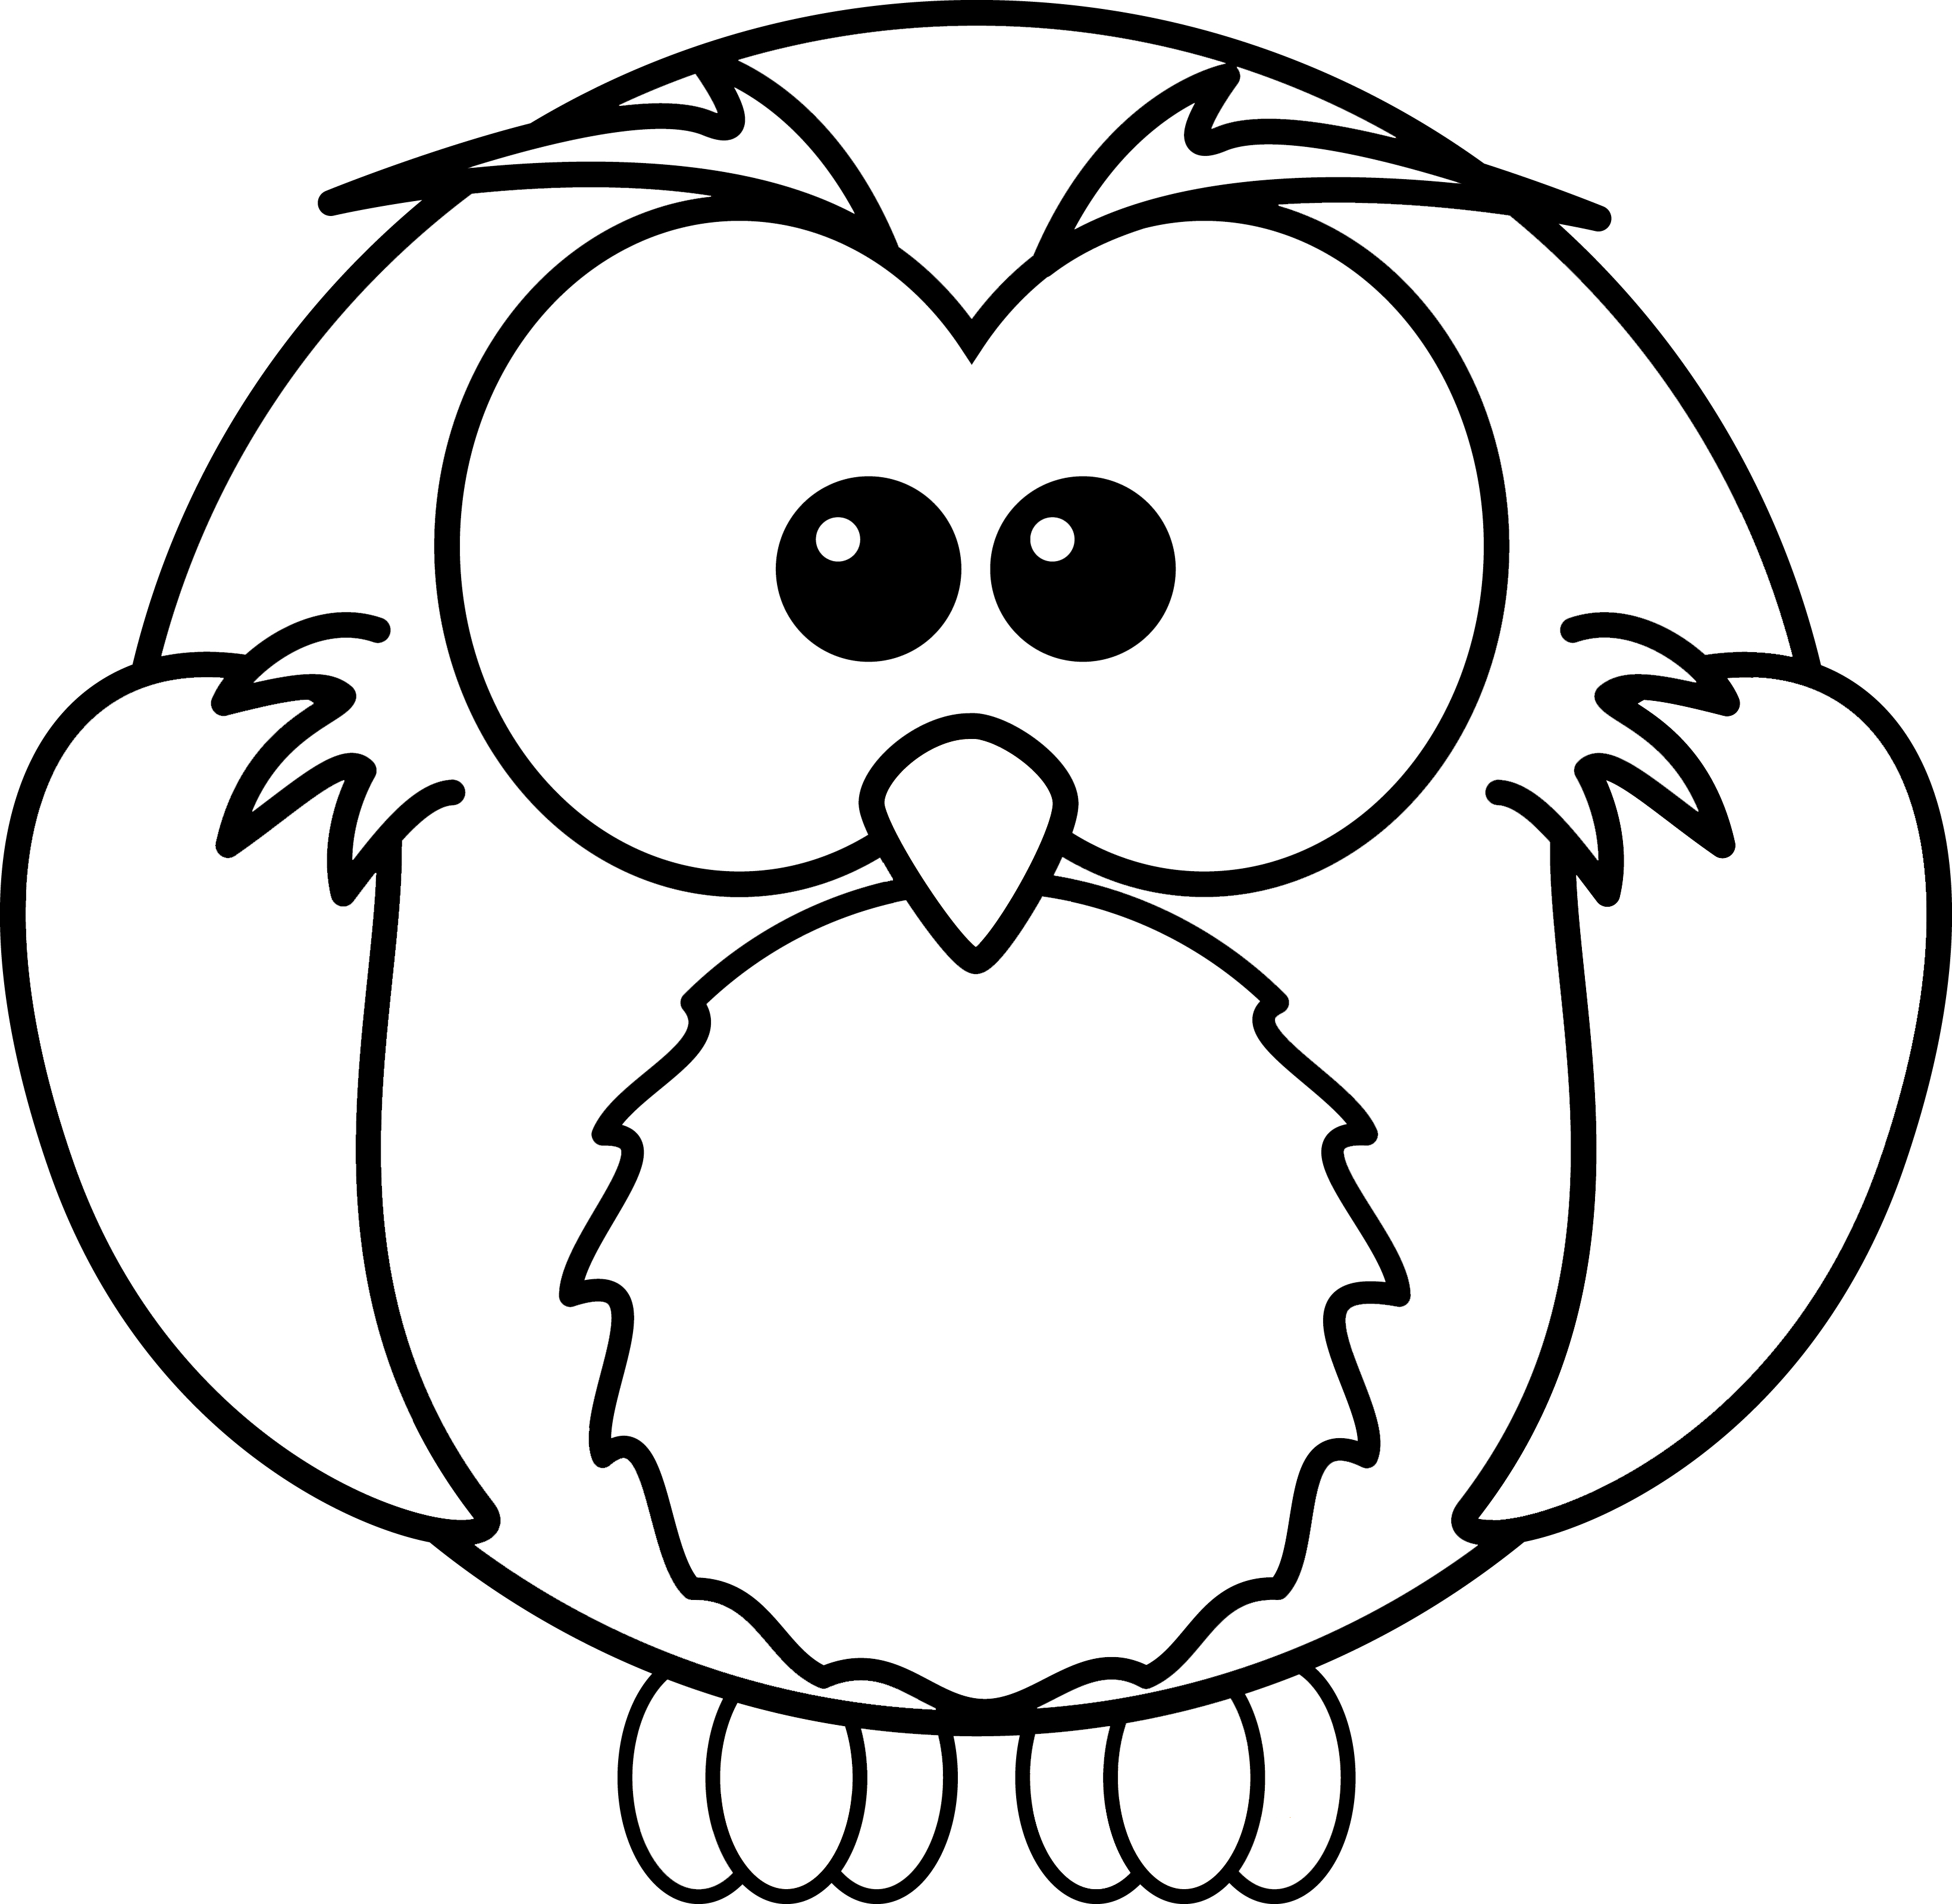 Page clipart coloring. Owl pages